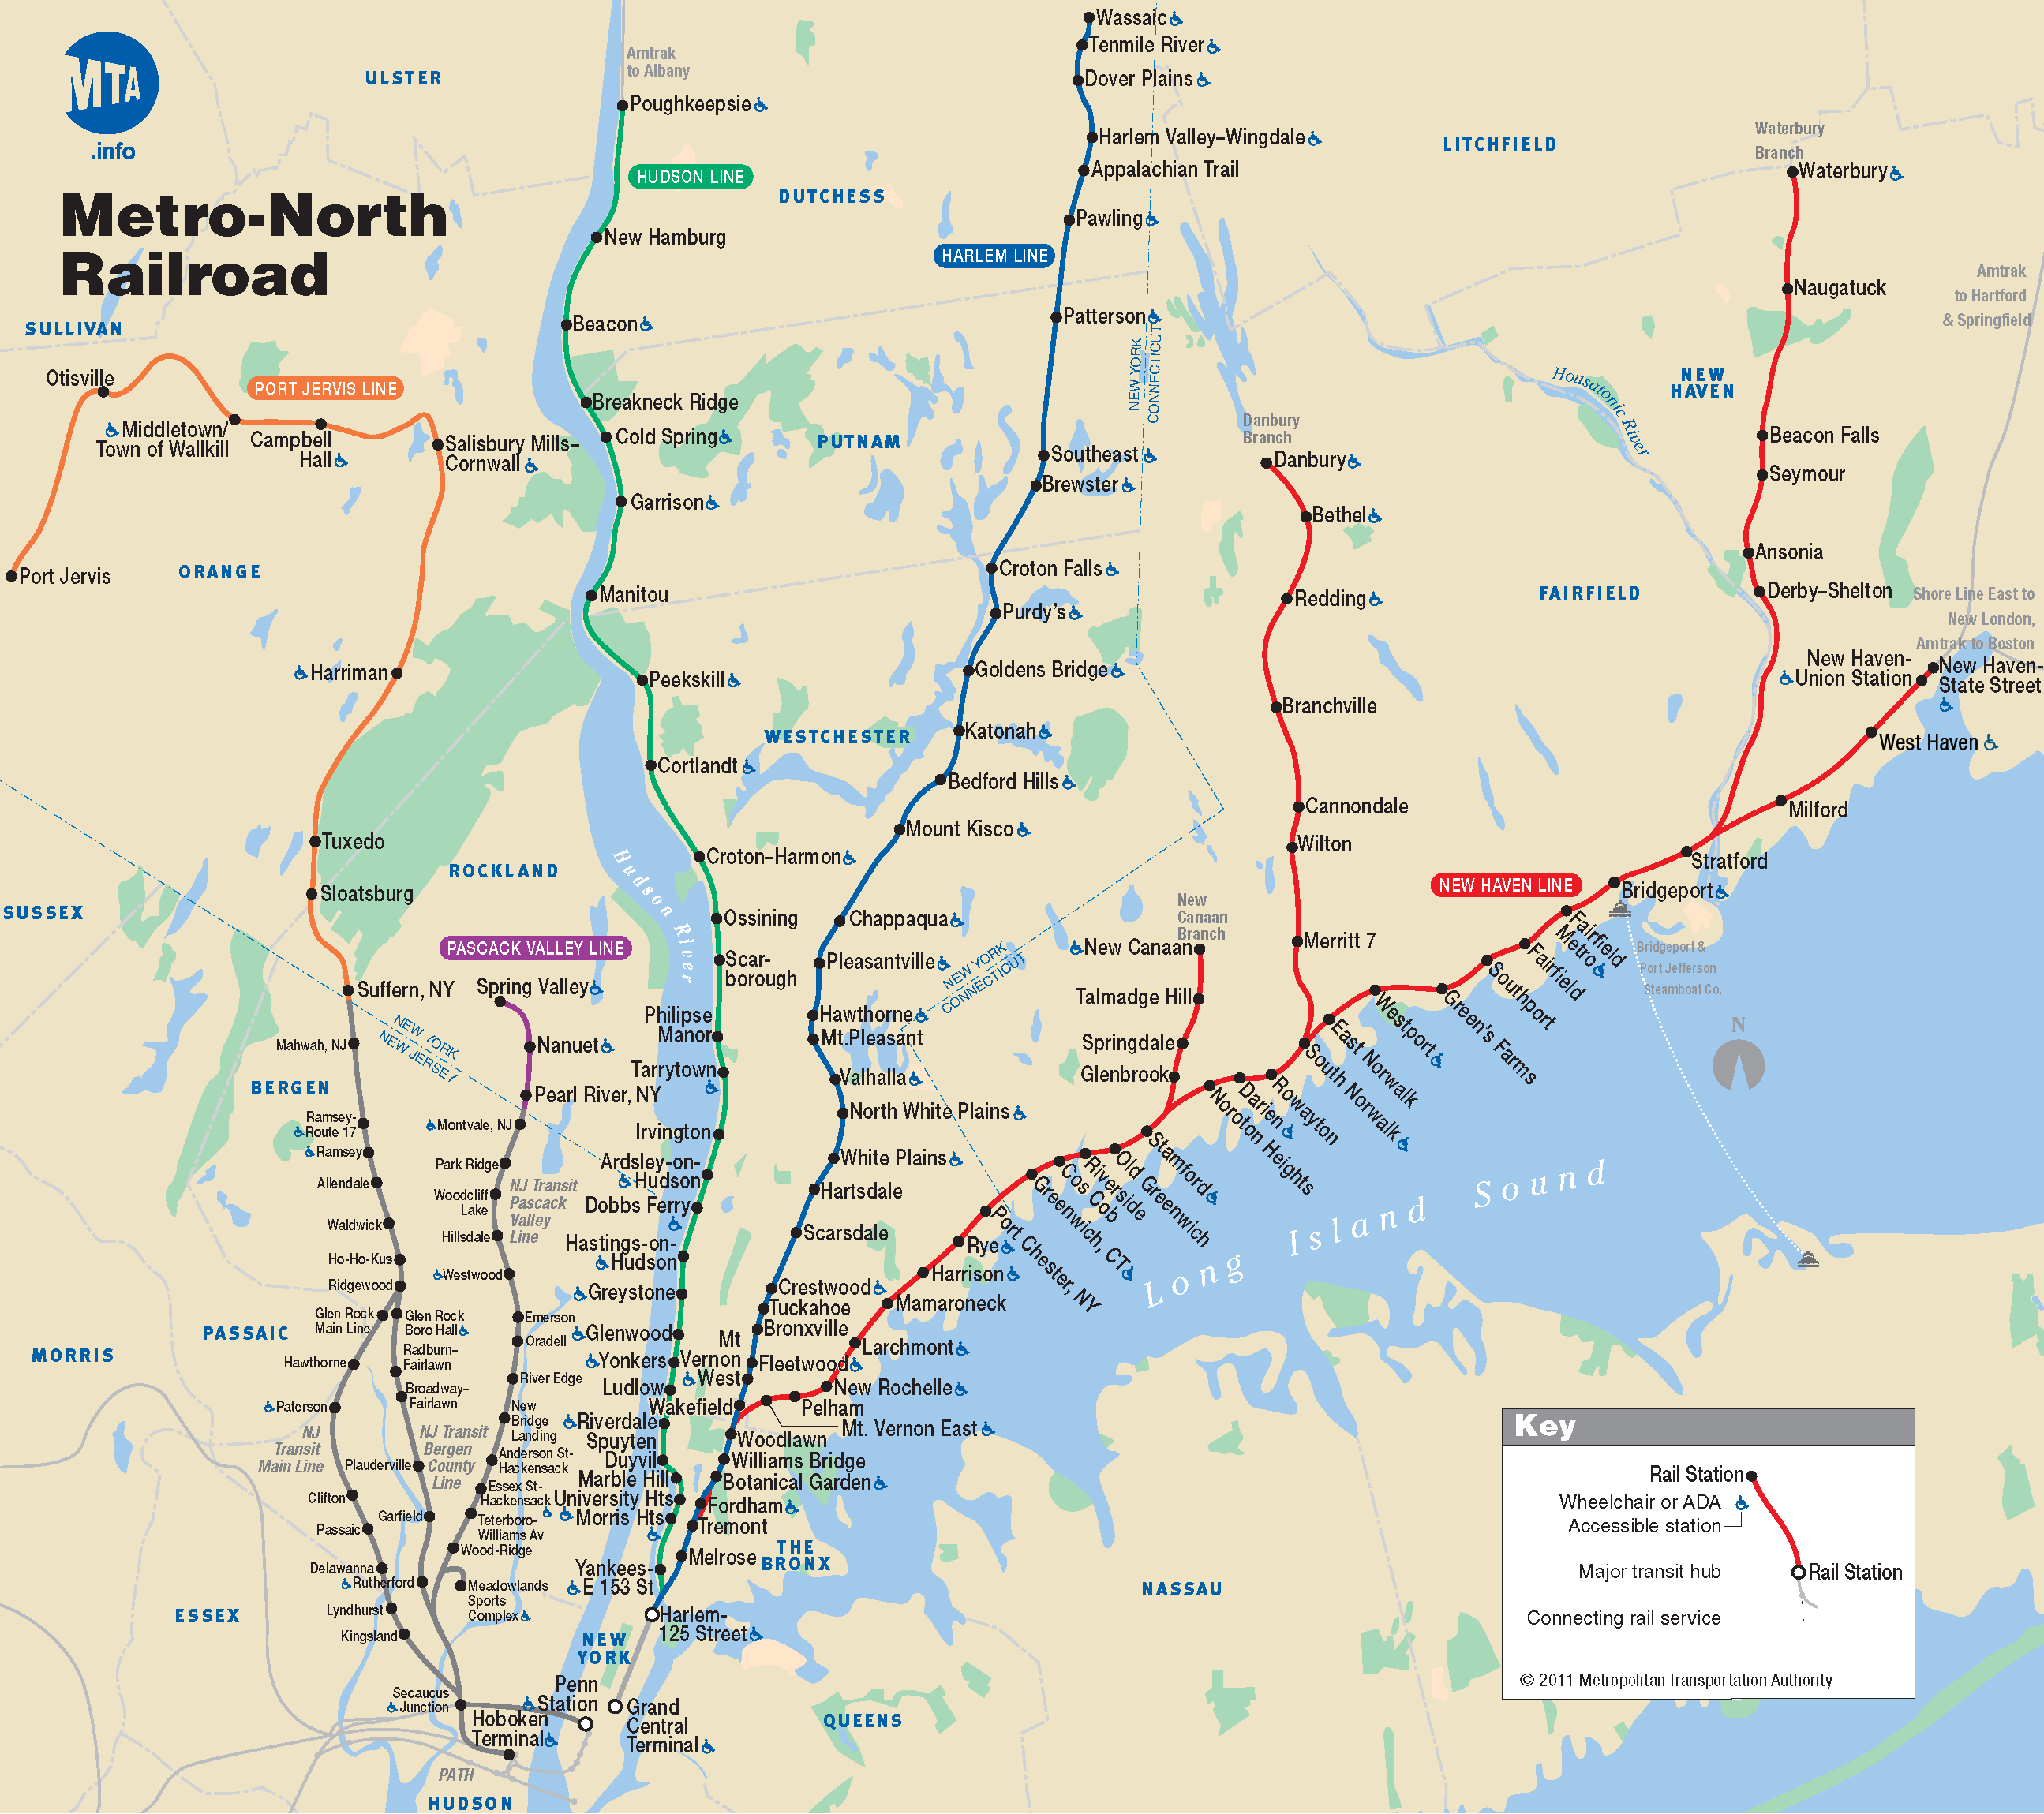 metro north map for new york city for commuting information from westchester and other hudson valley areas